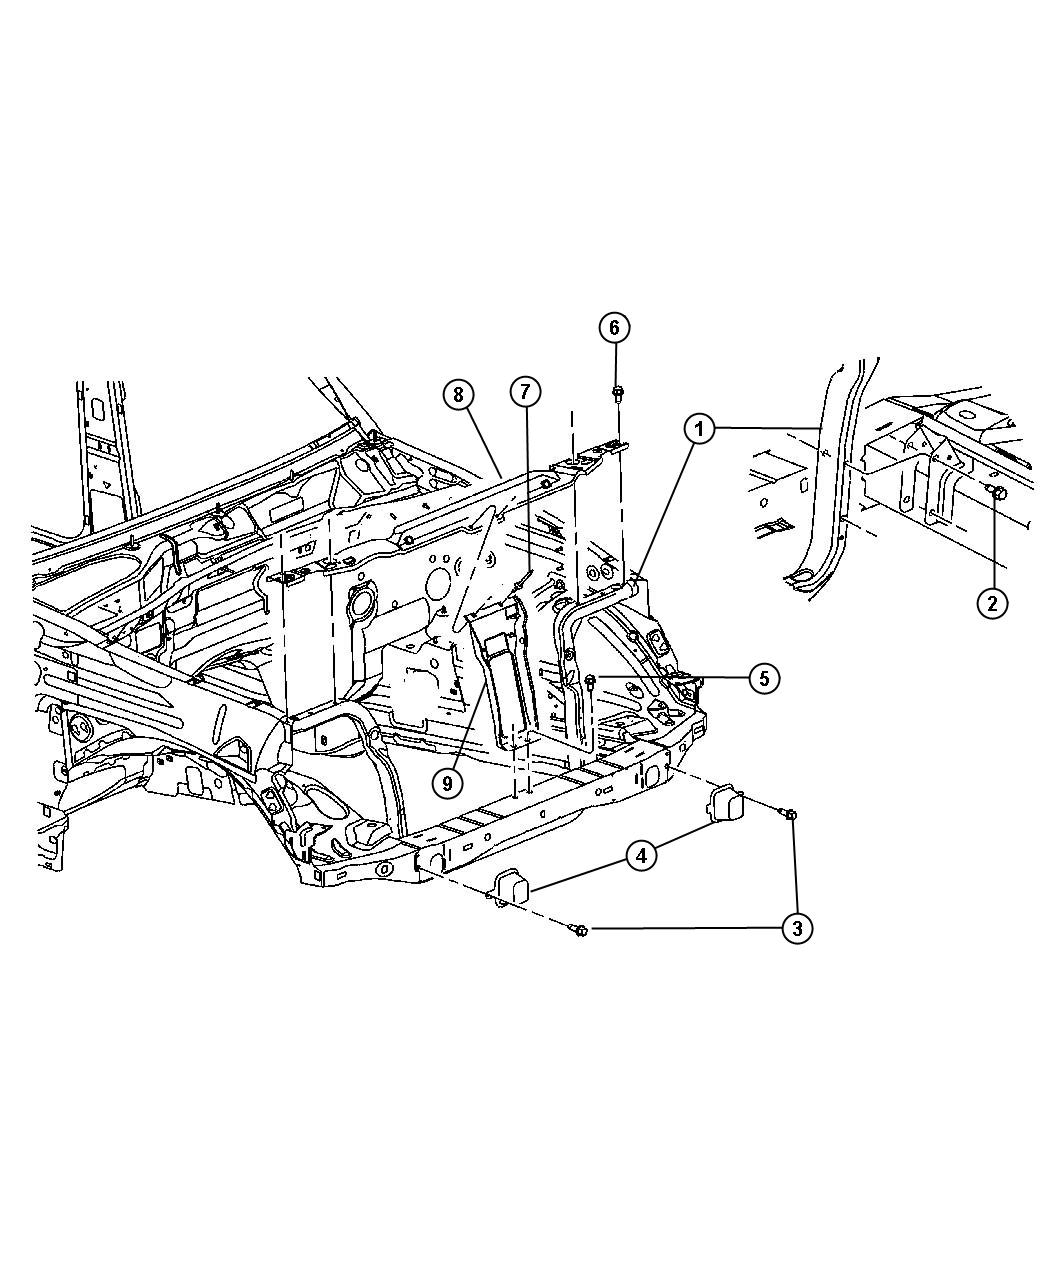 2006 Jeep Liberty Reinforcement. Hood latch. H and p